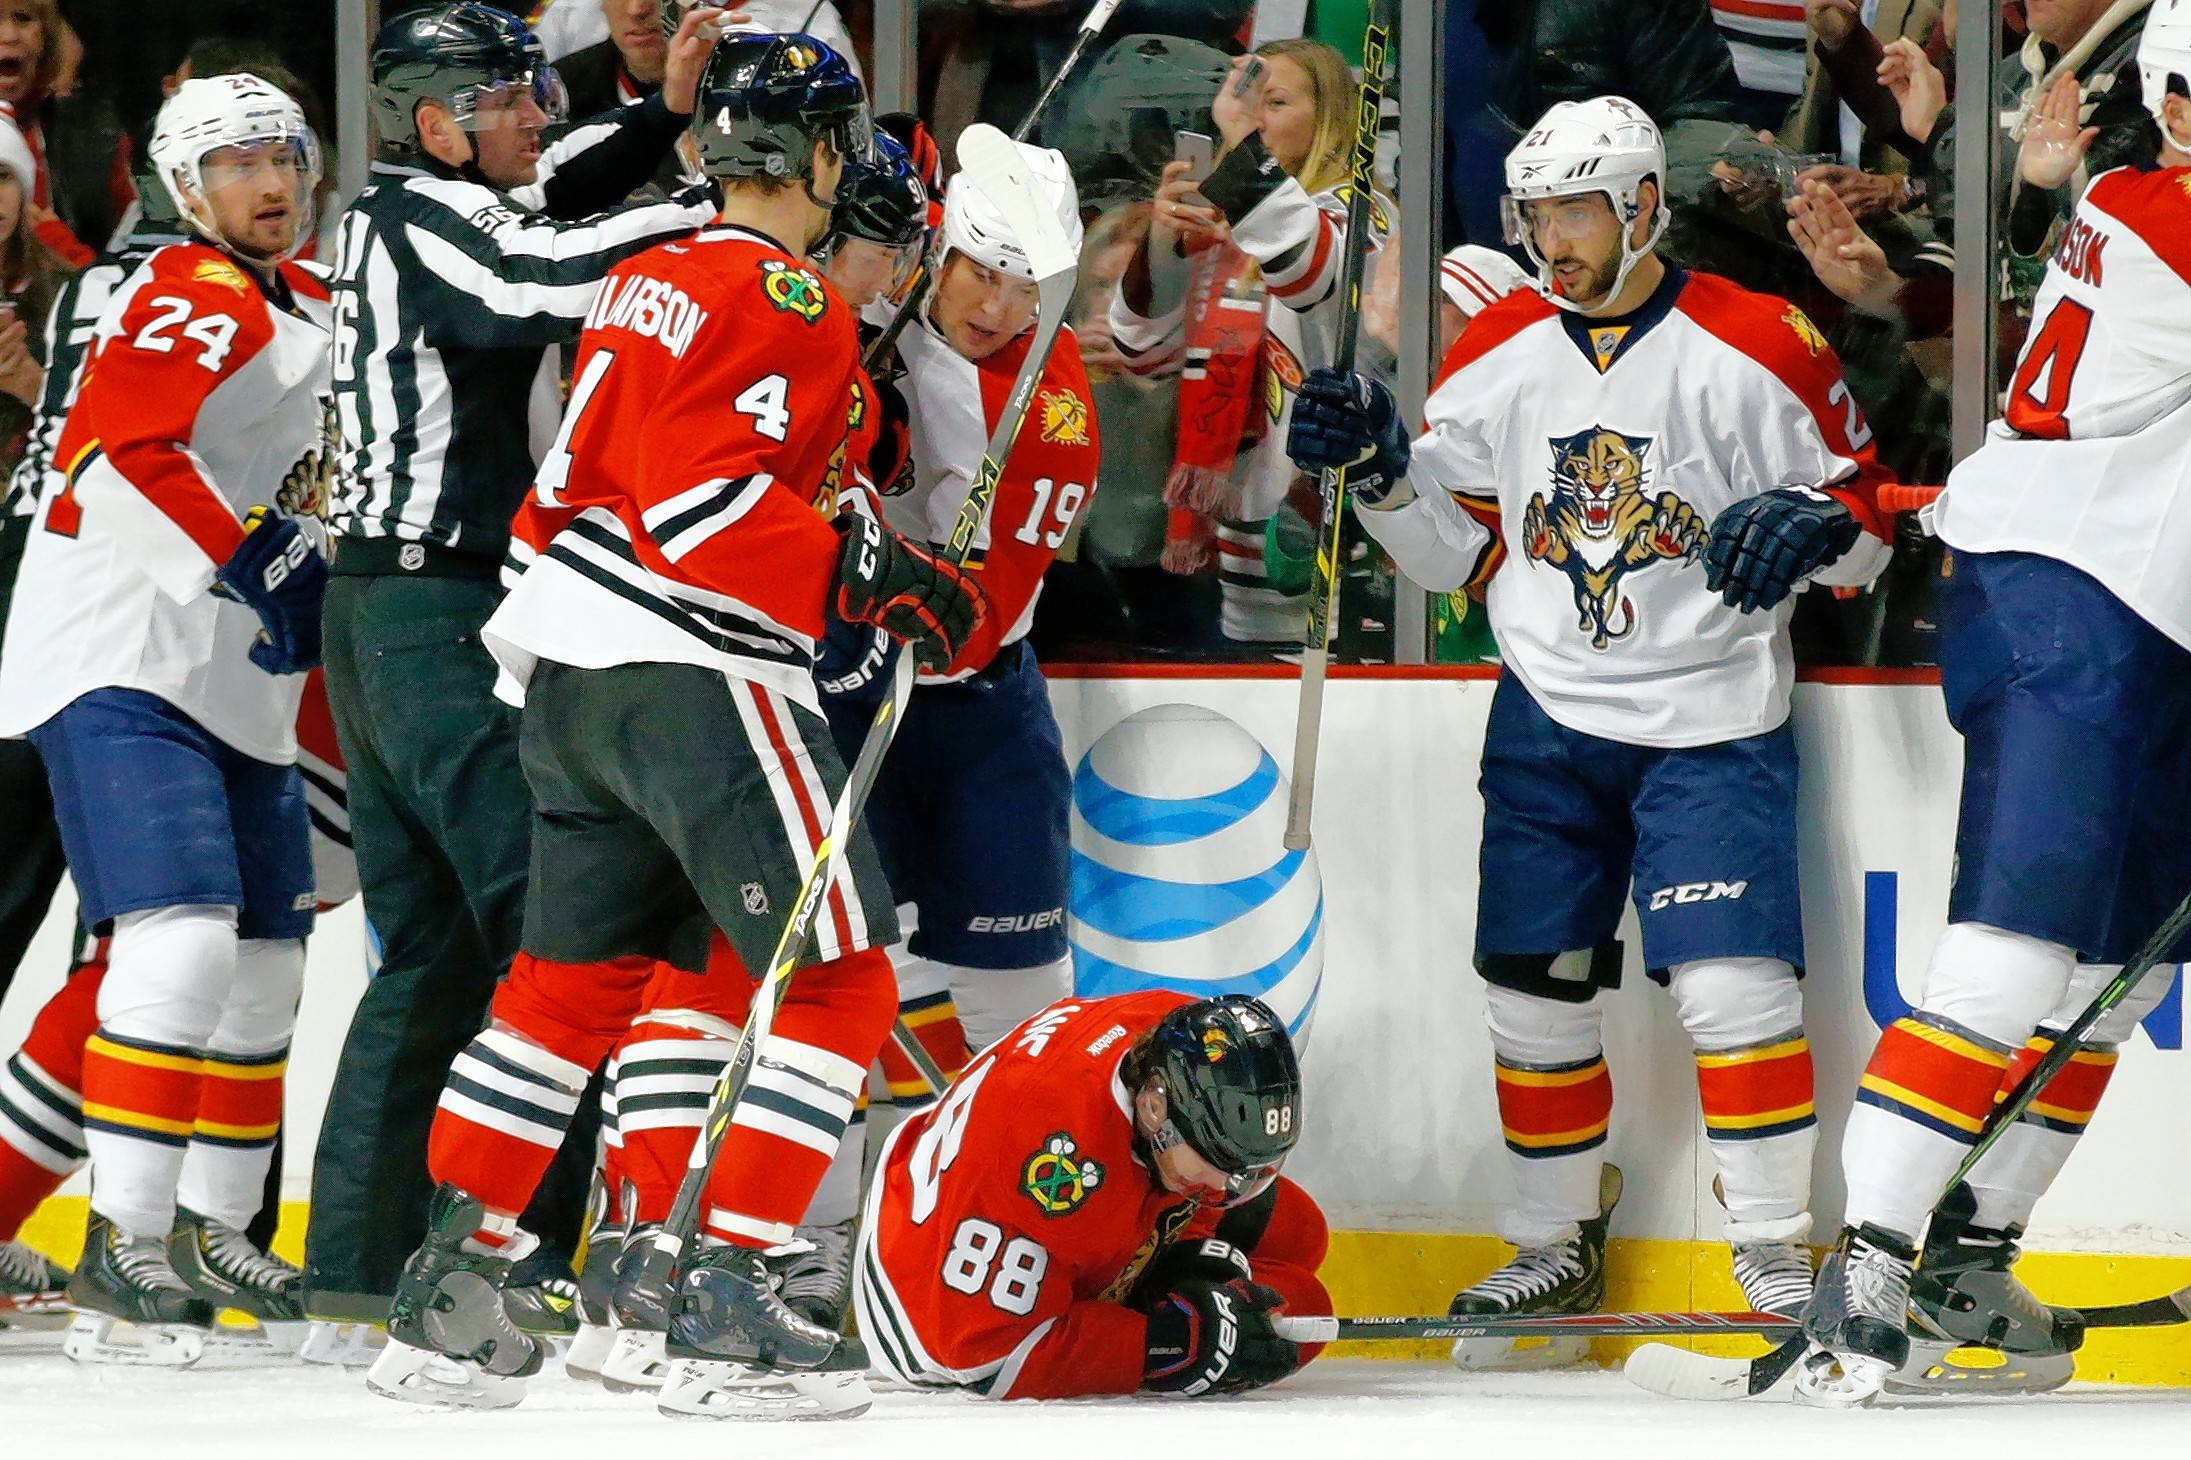 Chicago Blackhawks right wing Patrick Kane (88) suffered a broken left clavicle in a game against the Florida Panthers three years ago. That day was also the last time he broke with his warmup tradition of being the last Hawks player on the ice.